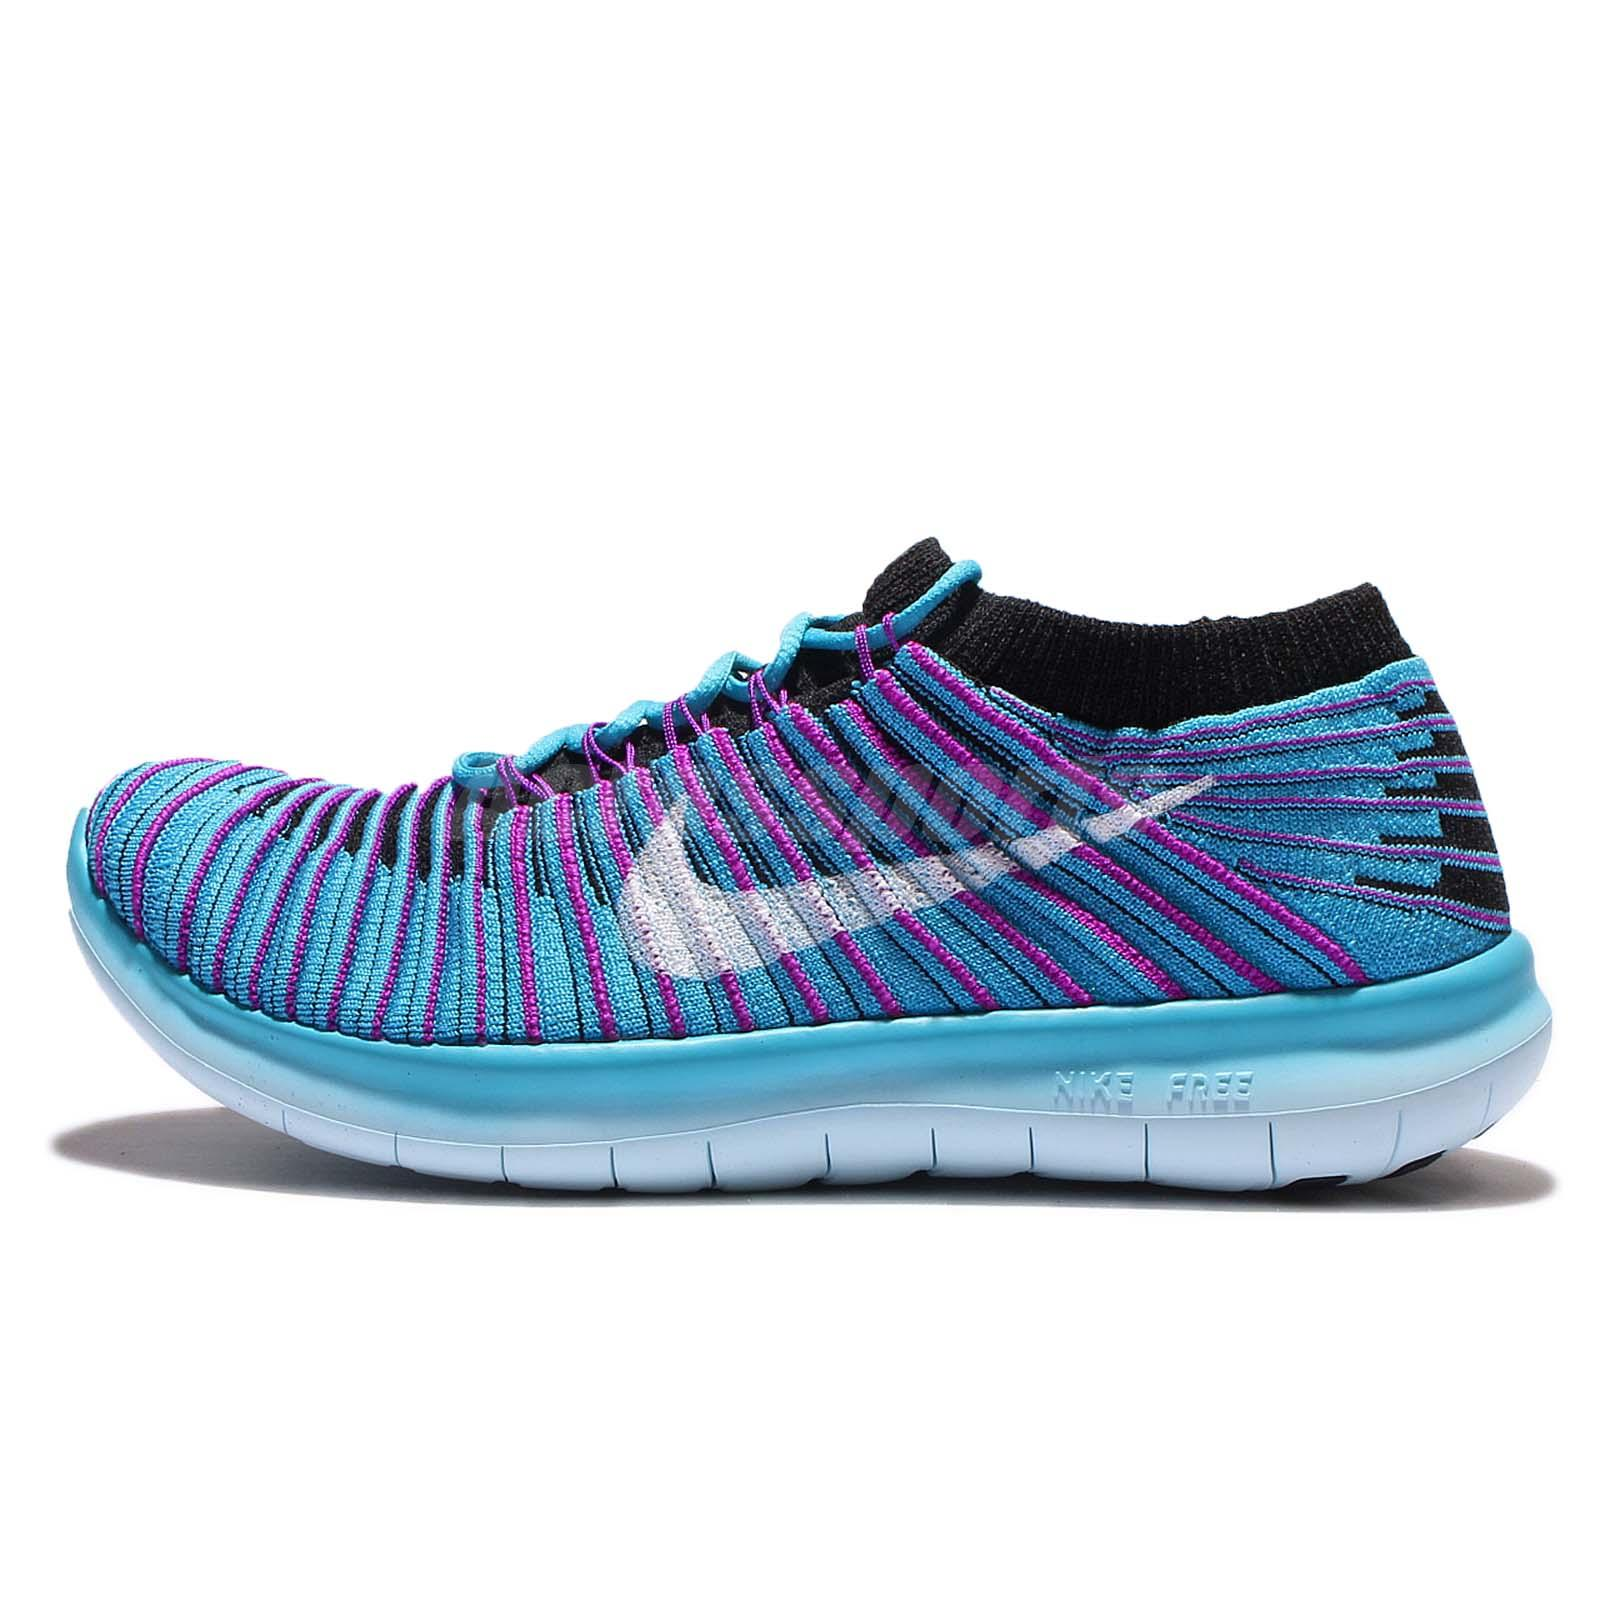 8143c84e753 Wmns Nike Free RN Motion Flyknit Blue Black Womens Running Trainers  834585-401